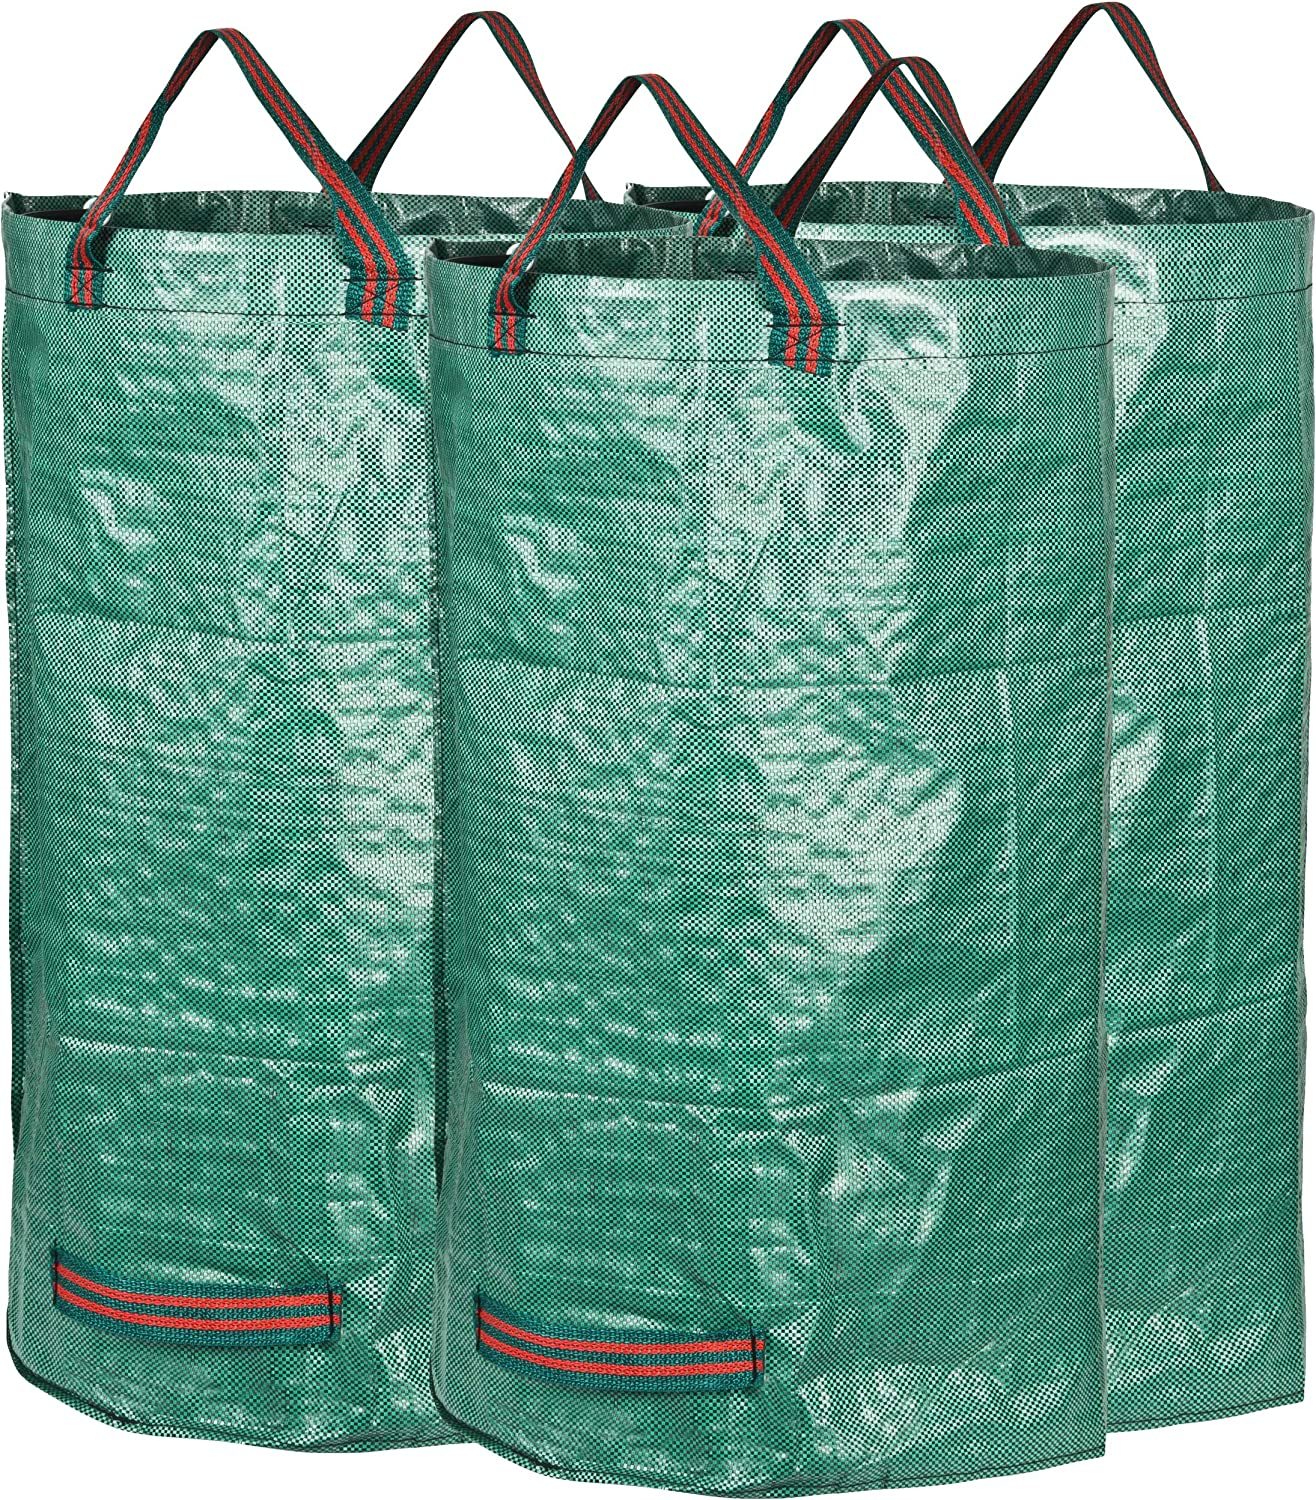 GardenMate 3-Pack 32 Gallons Reusable Garden Waste Bags (H30, D18 inches) - Yard Waste Bags